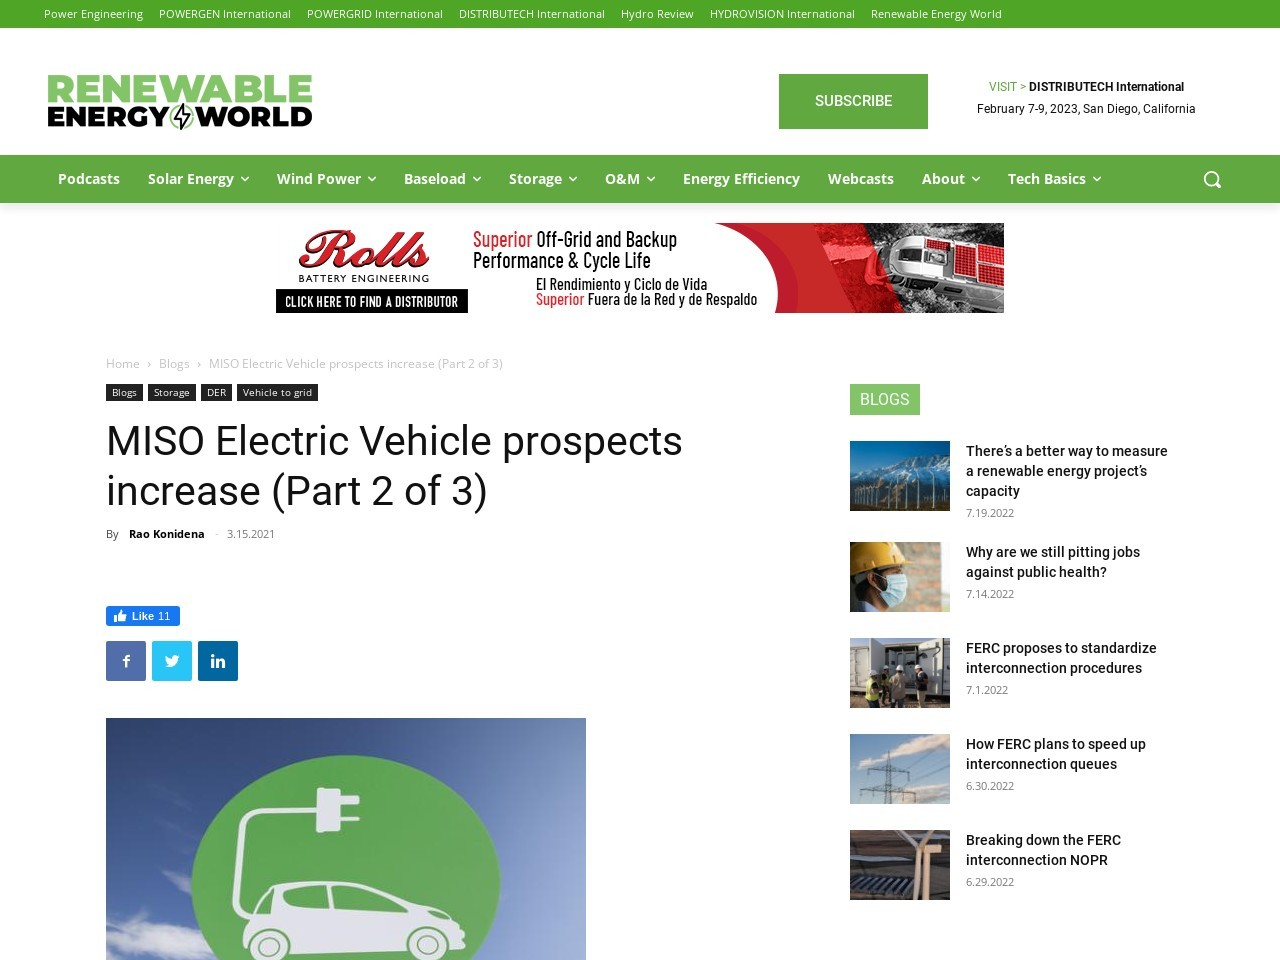 MISO Electric Vehicle prospects increase (Part 2 of 3)